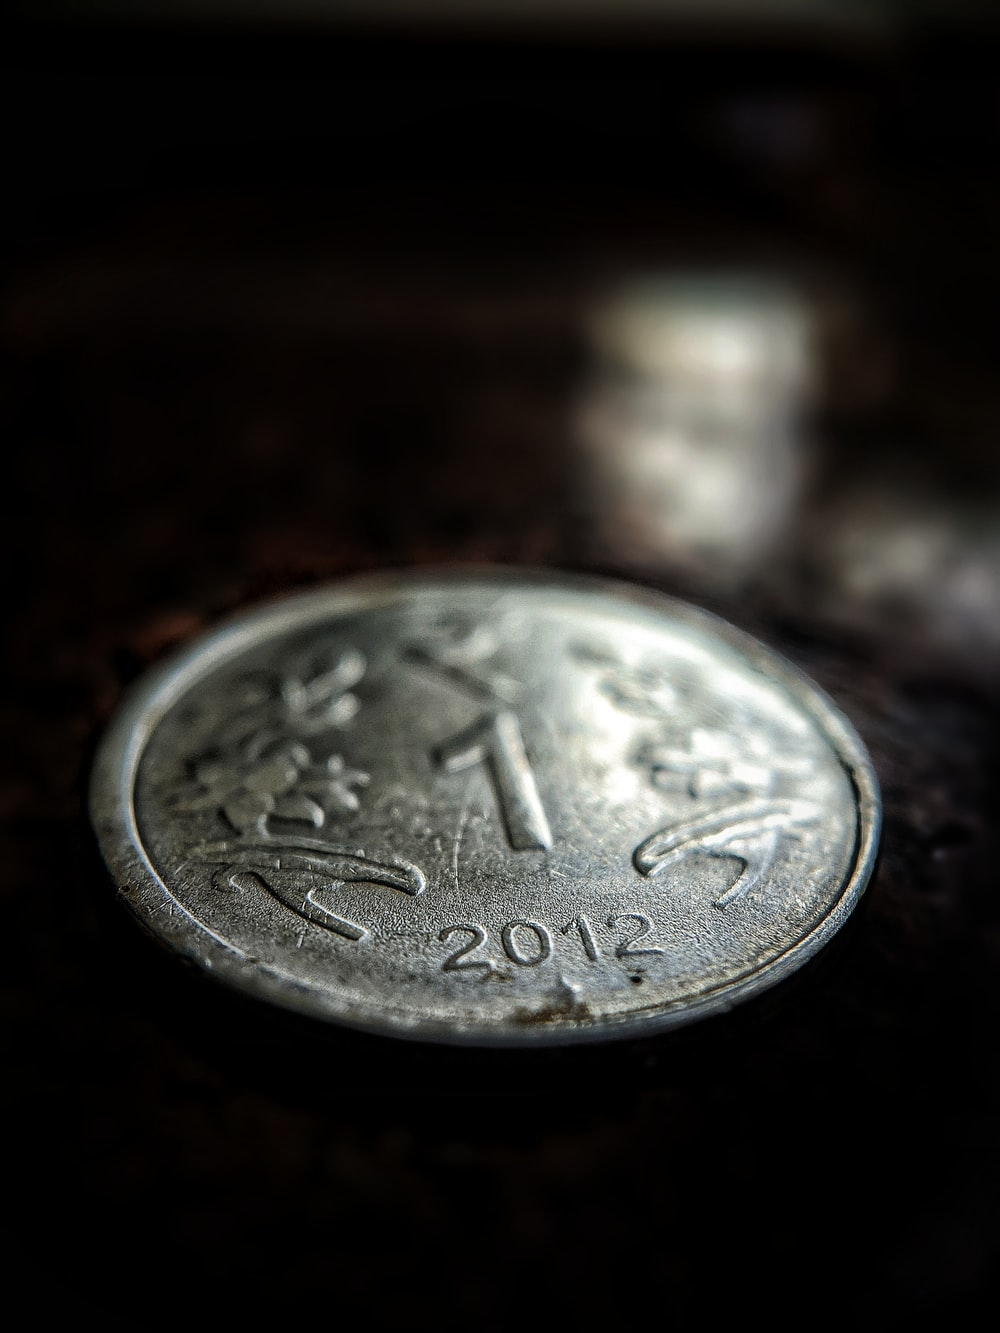 silver round coin on brown surface